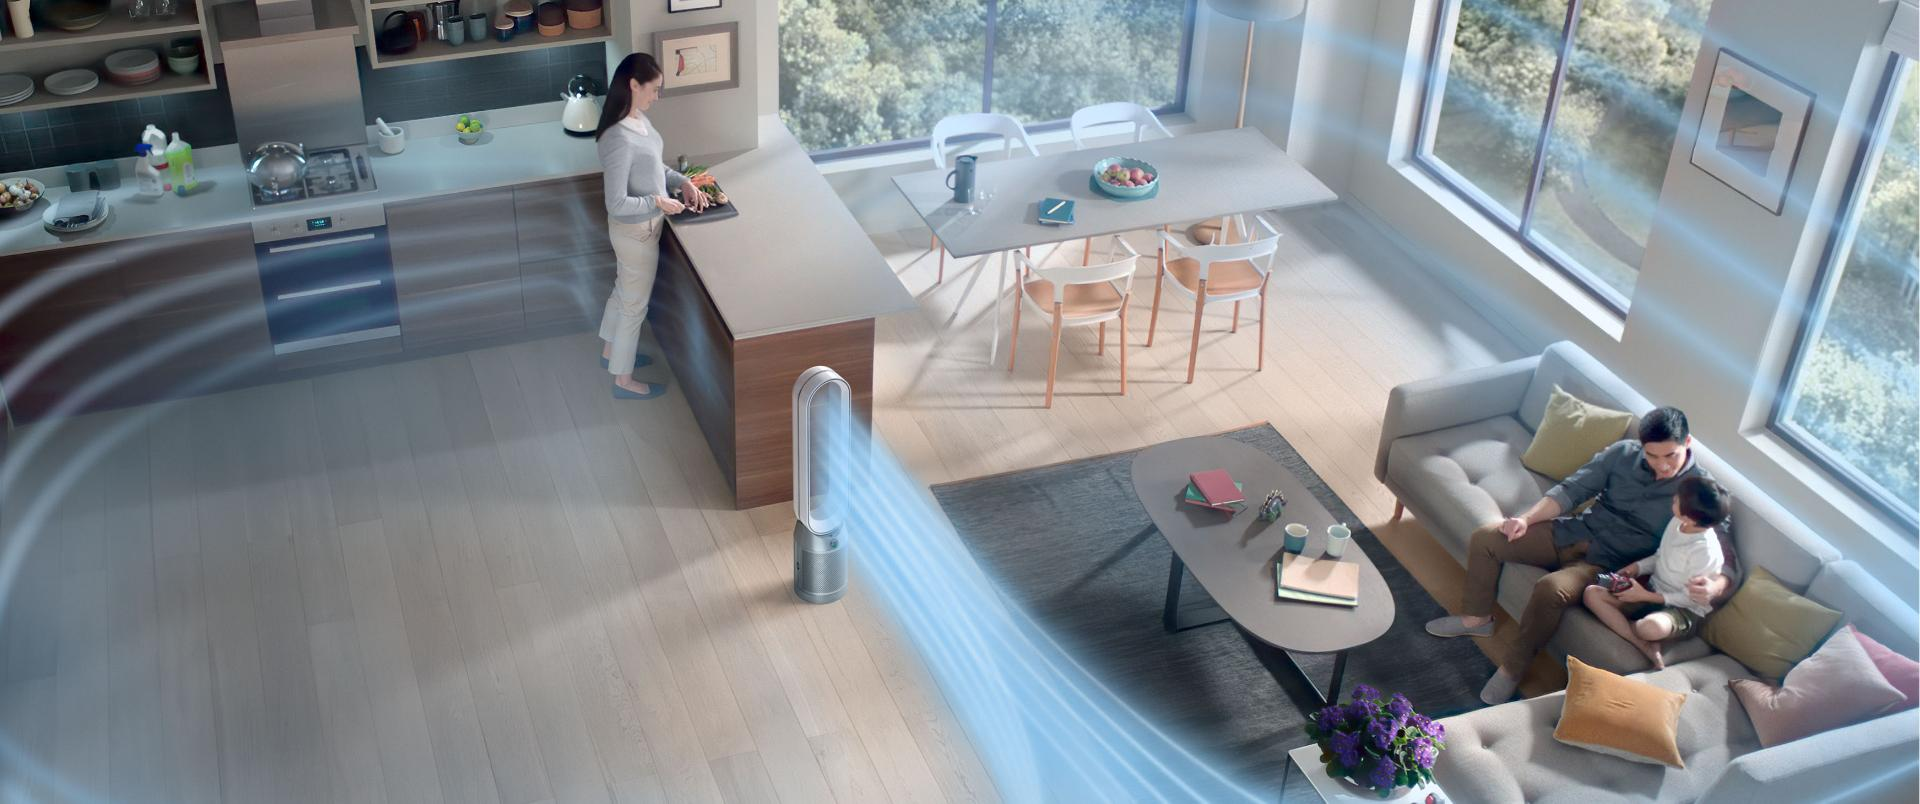 Large living space purified by a Dyson purifier